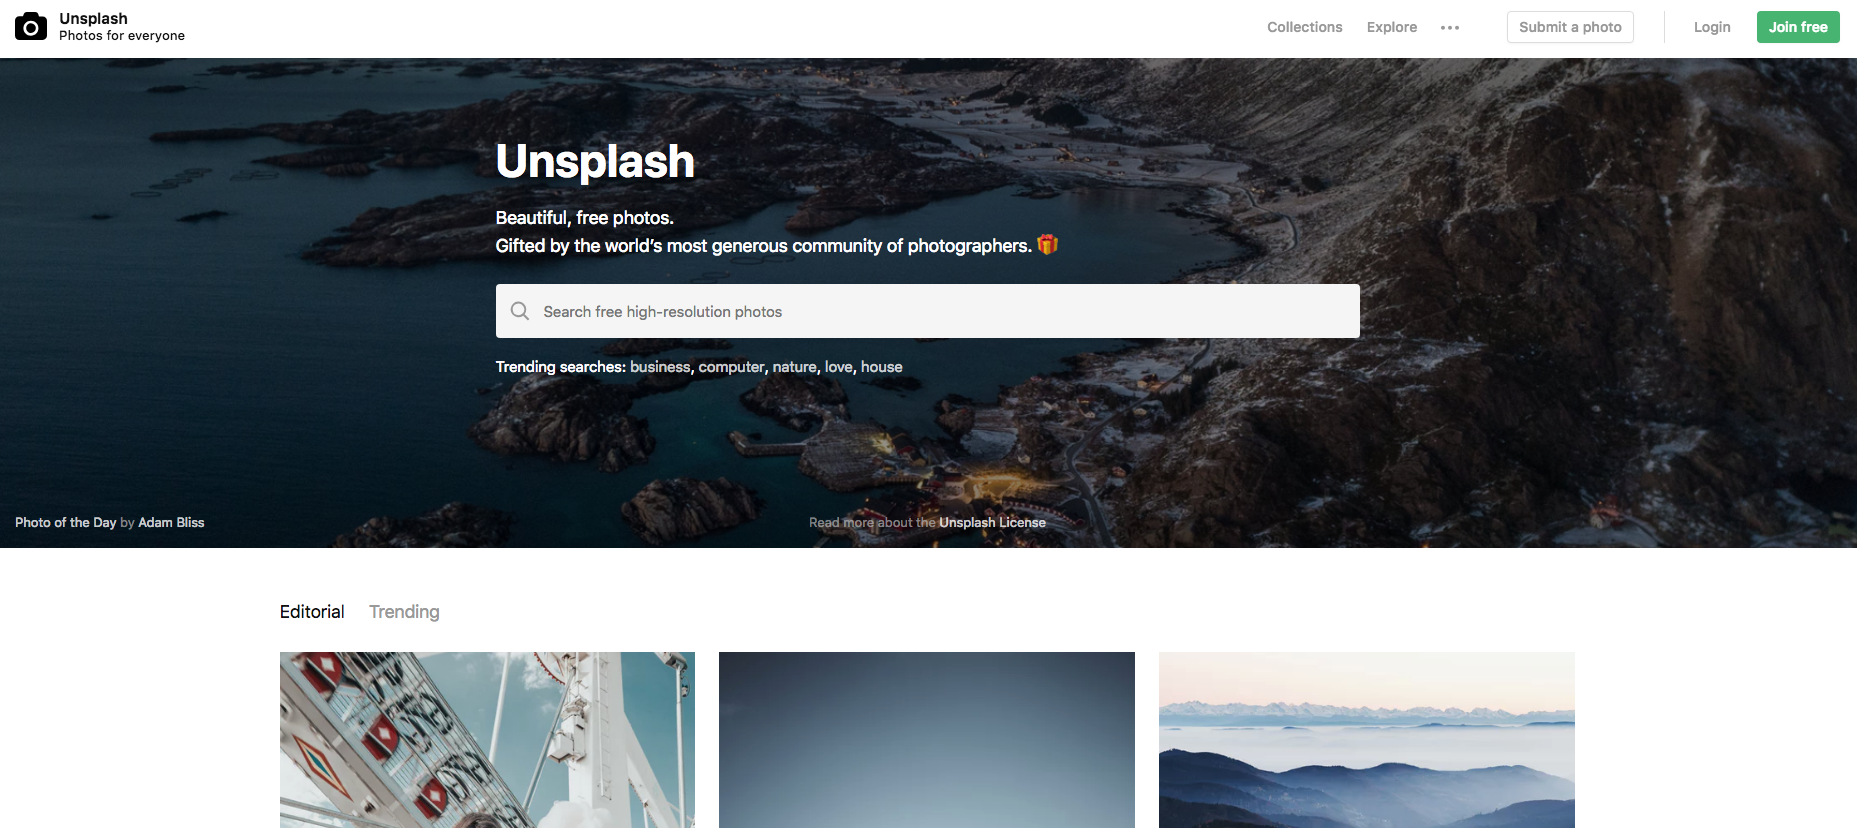 Unplash-website-image-f8c-tools-blog-post